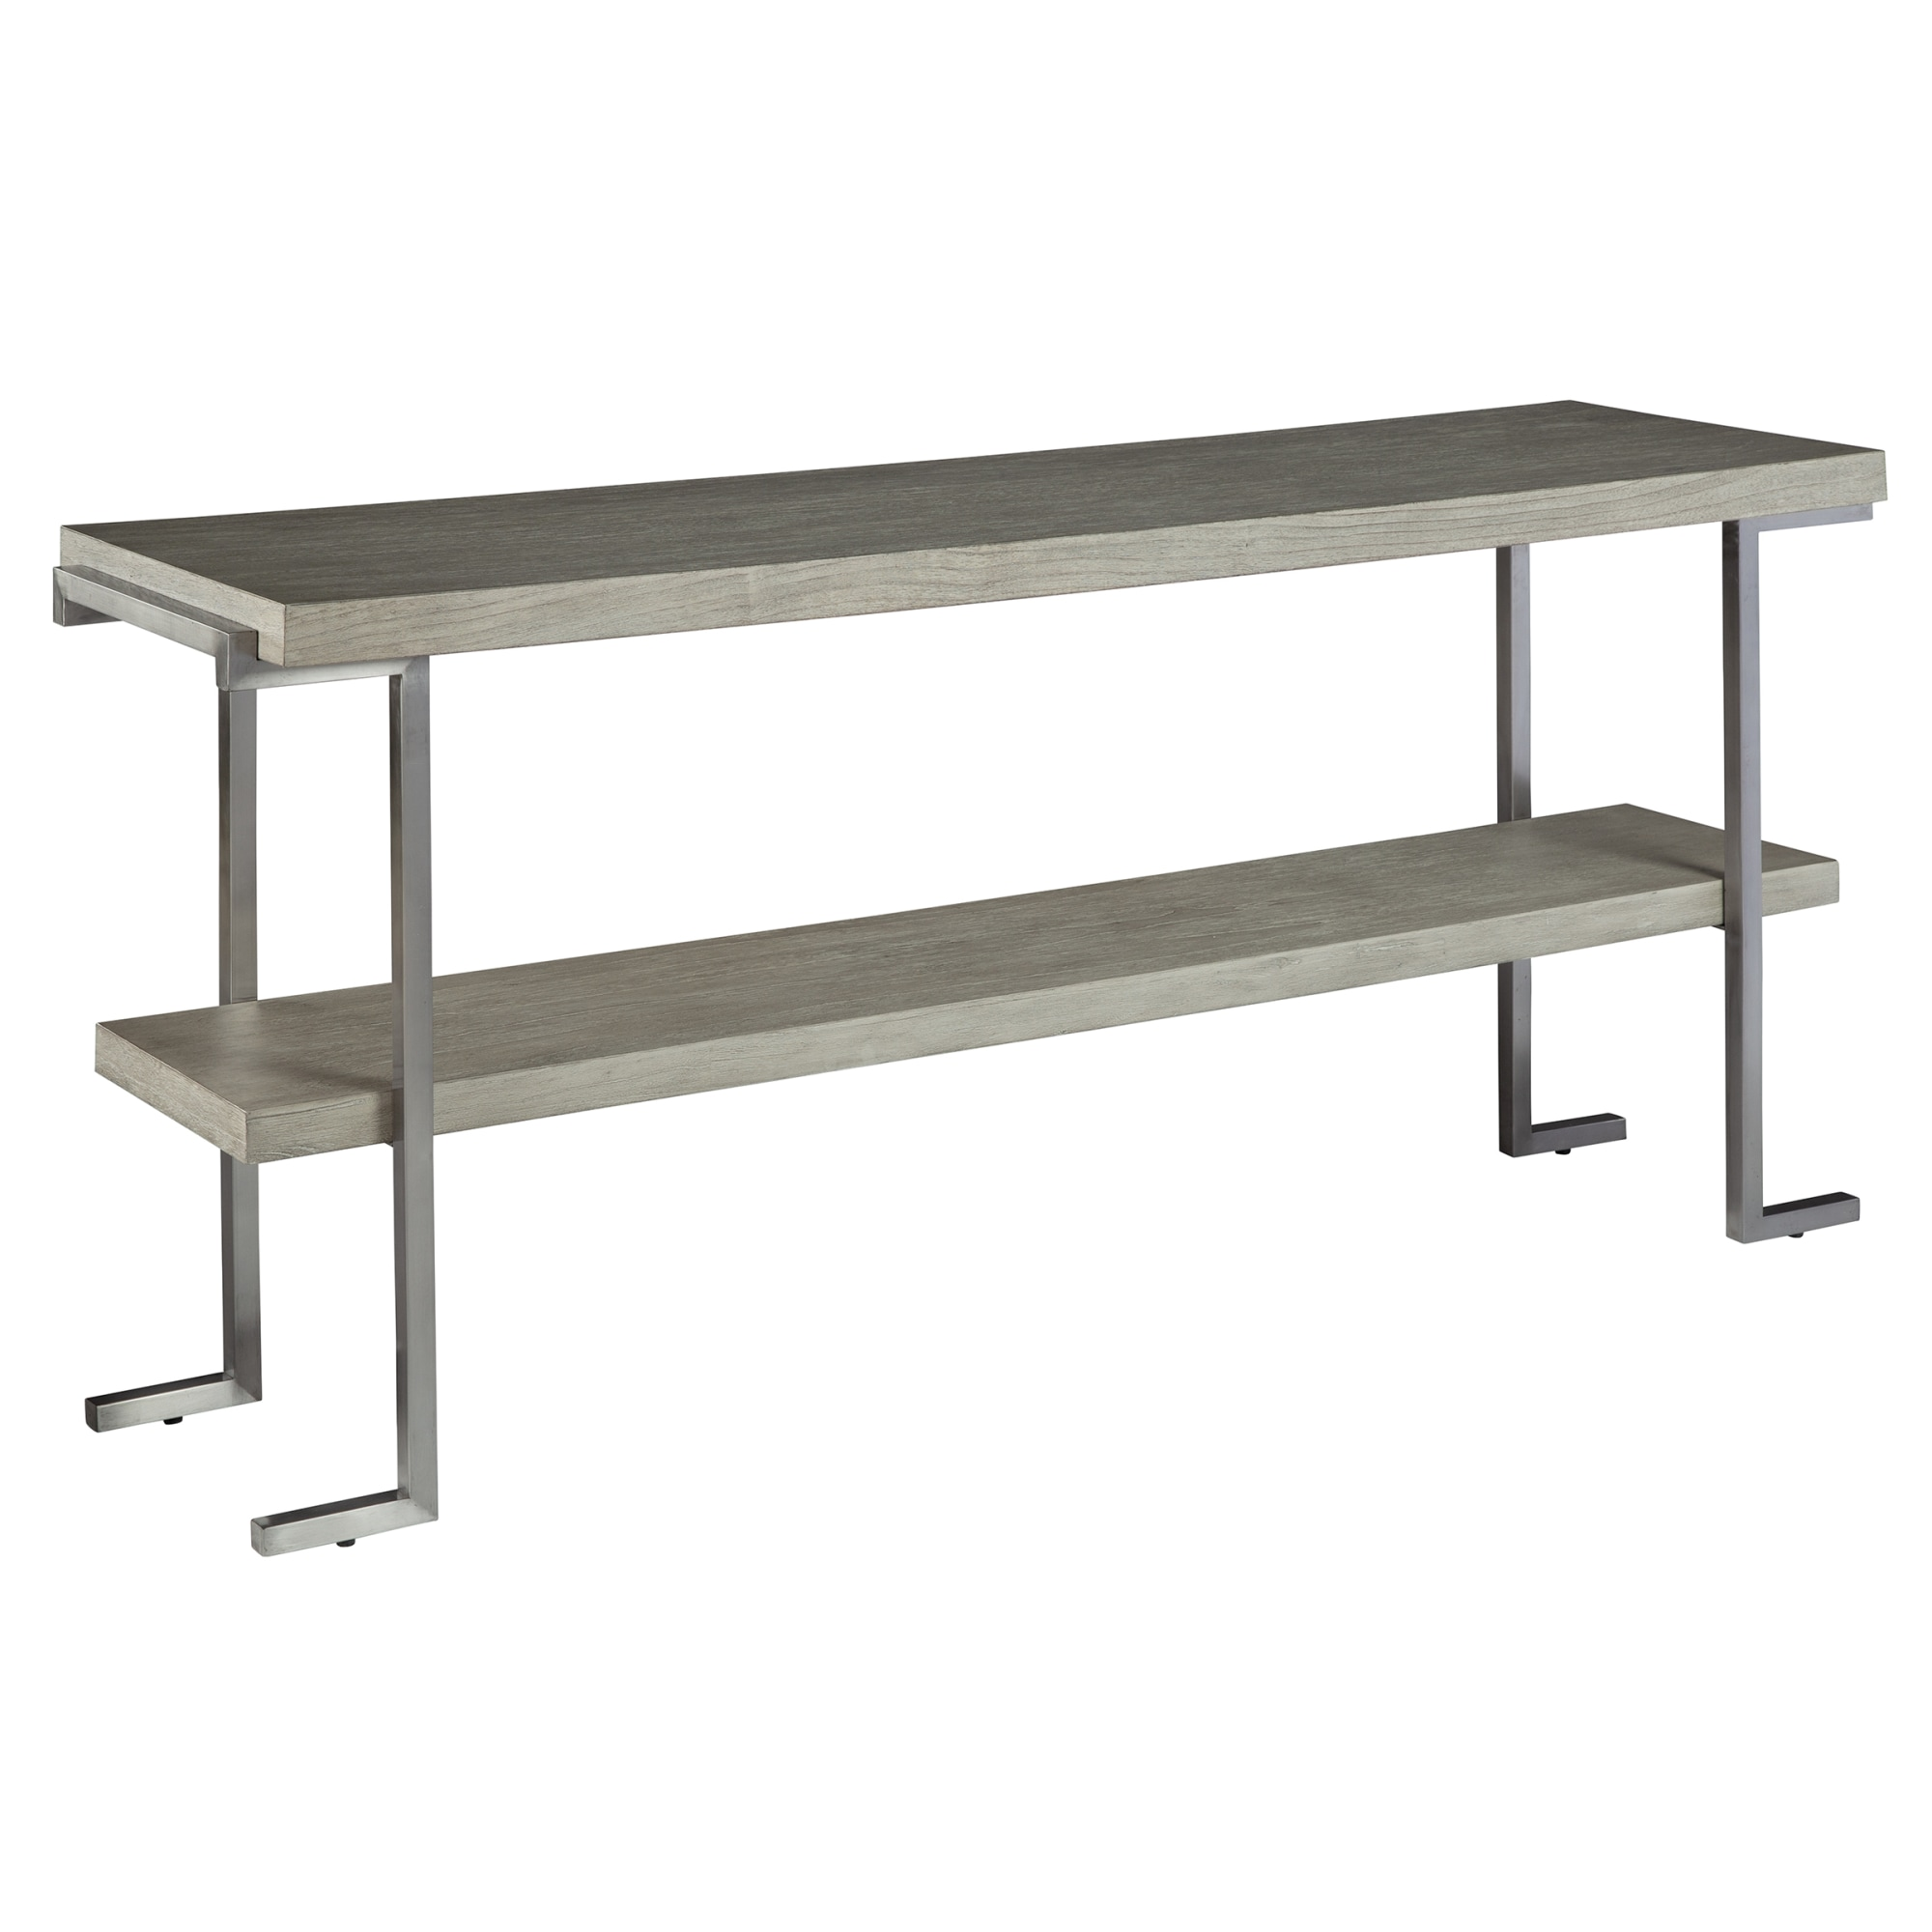 Image for 2-4408 Sofa Table from Hekman Official Website